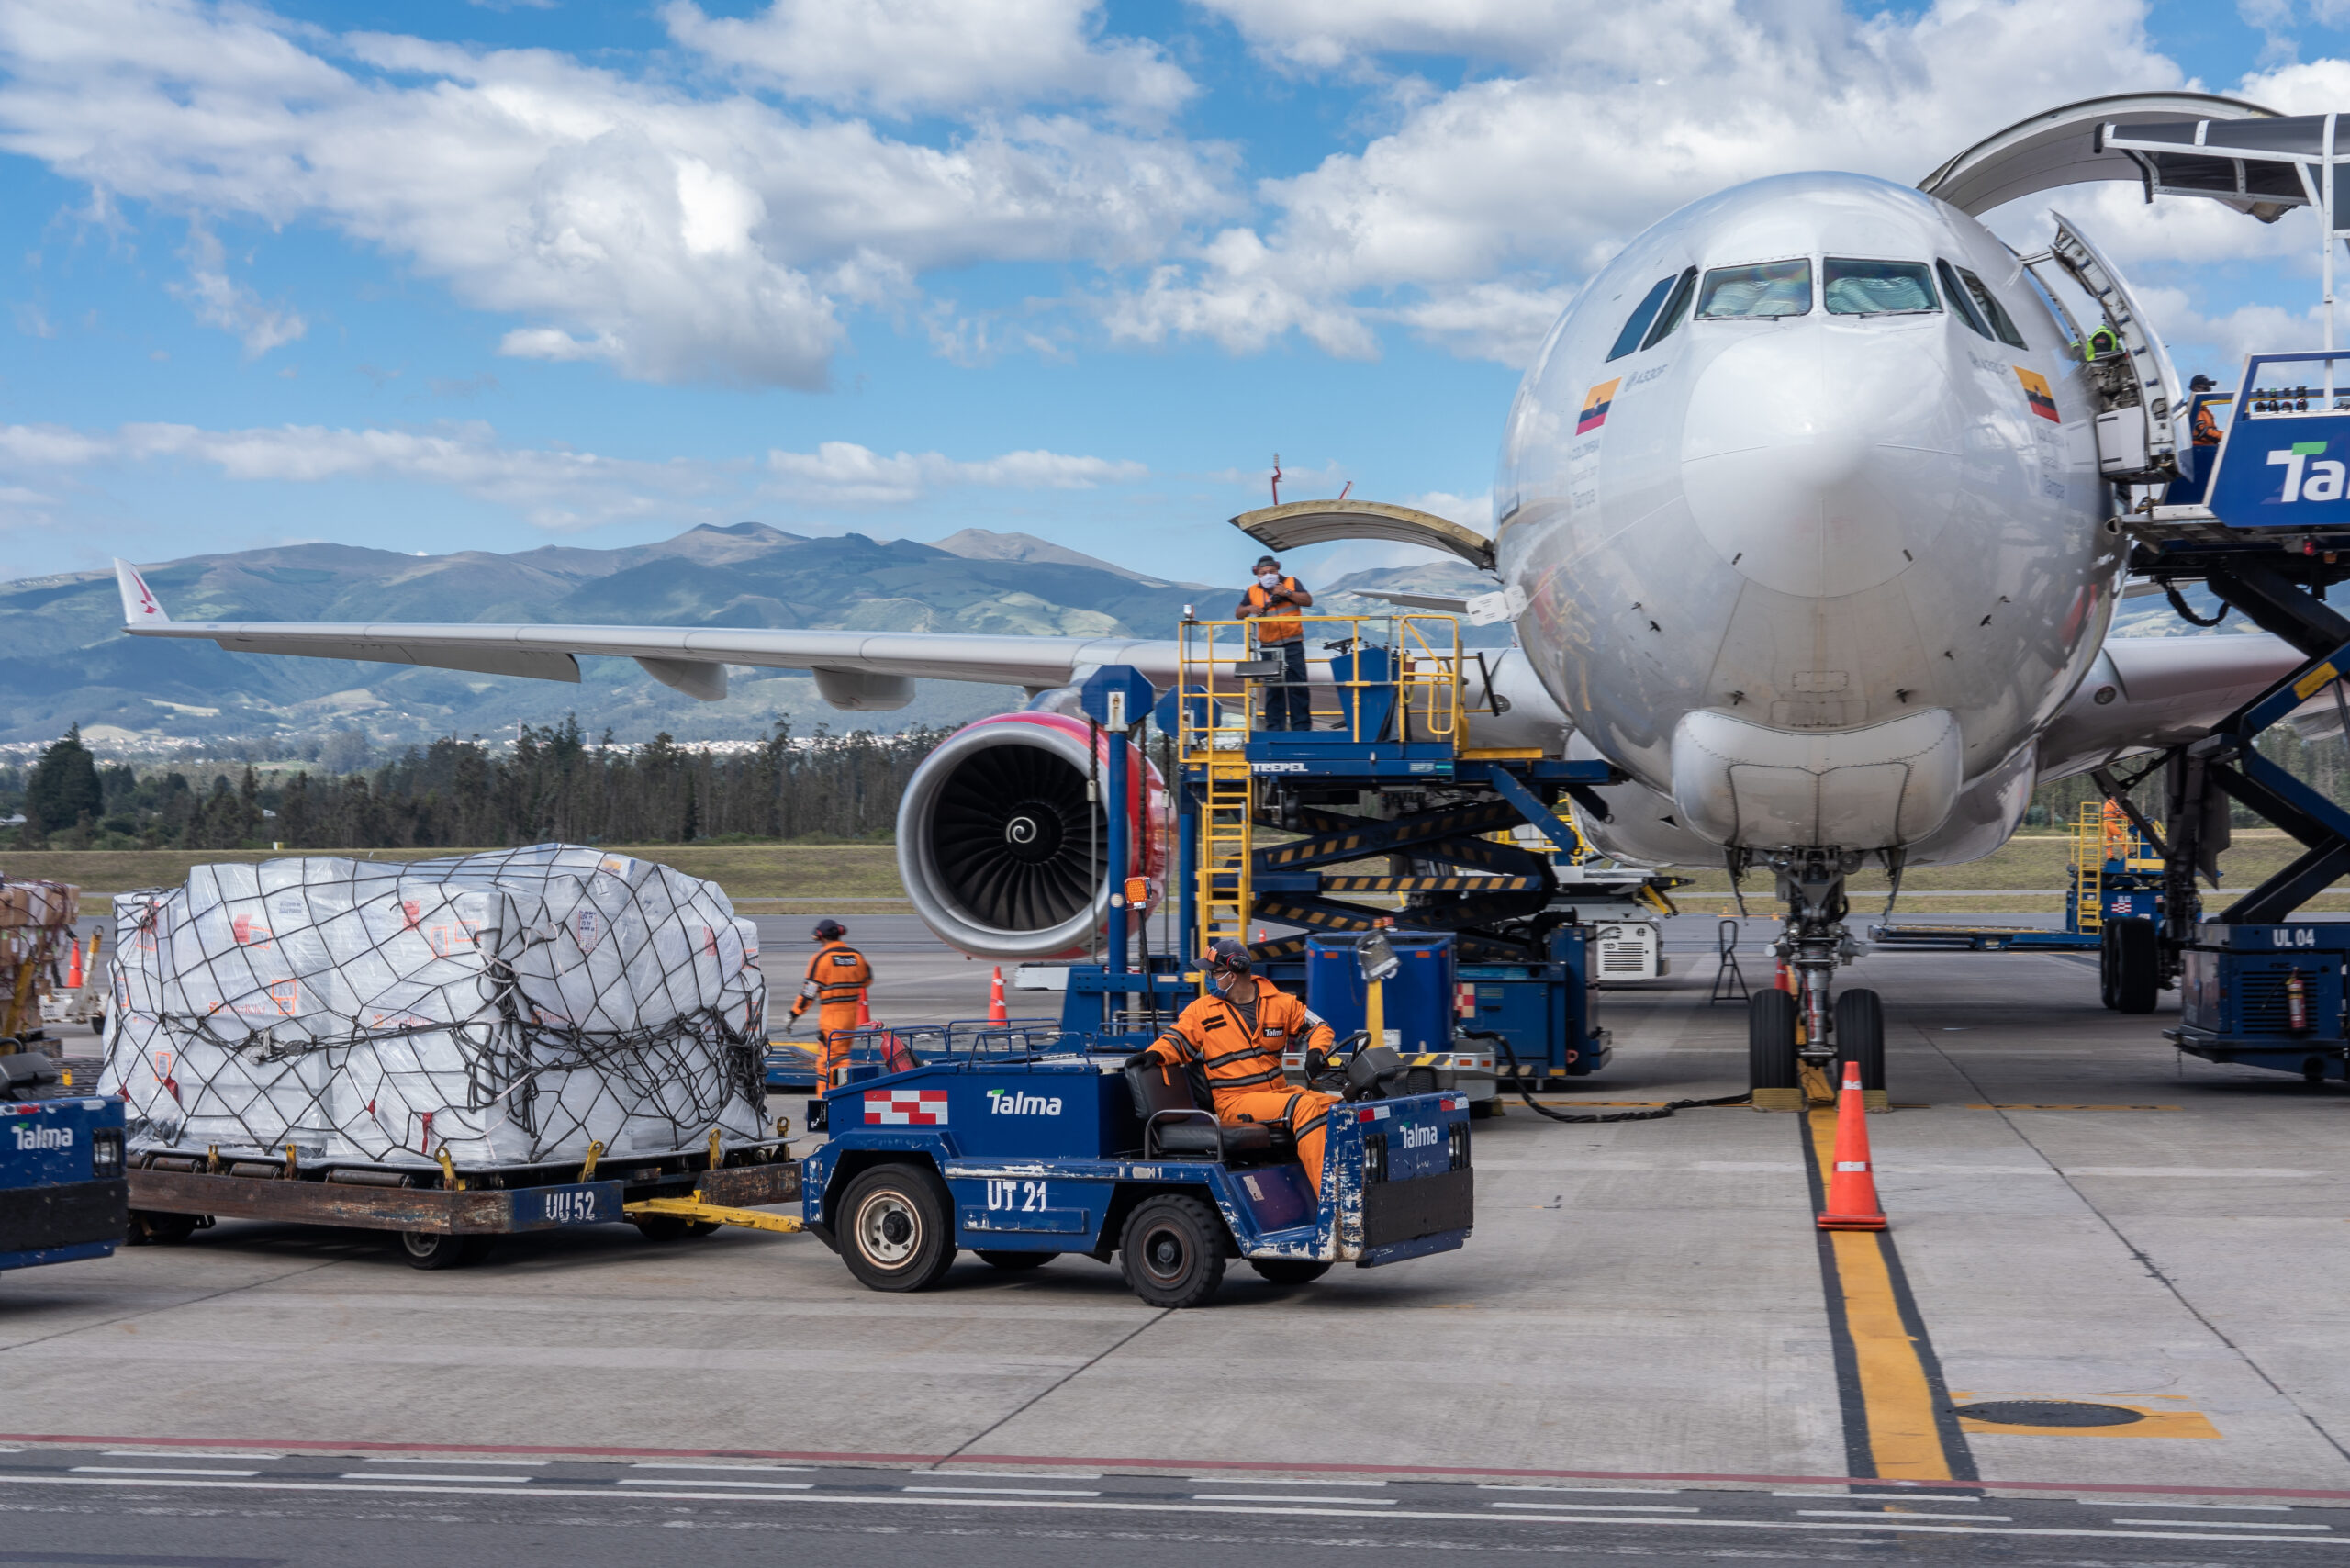 8.8 tons of Covid-19 medical aid from Direct Relief arriving in Ecuador on June 4, 2020. (Isadora Romero for Direct Relief)